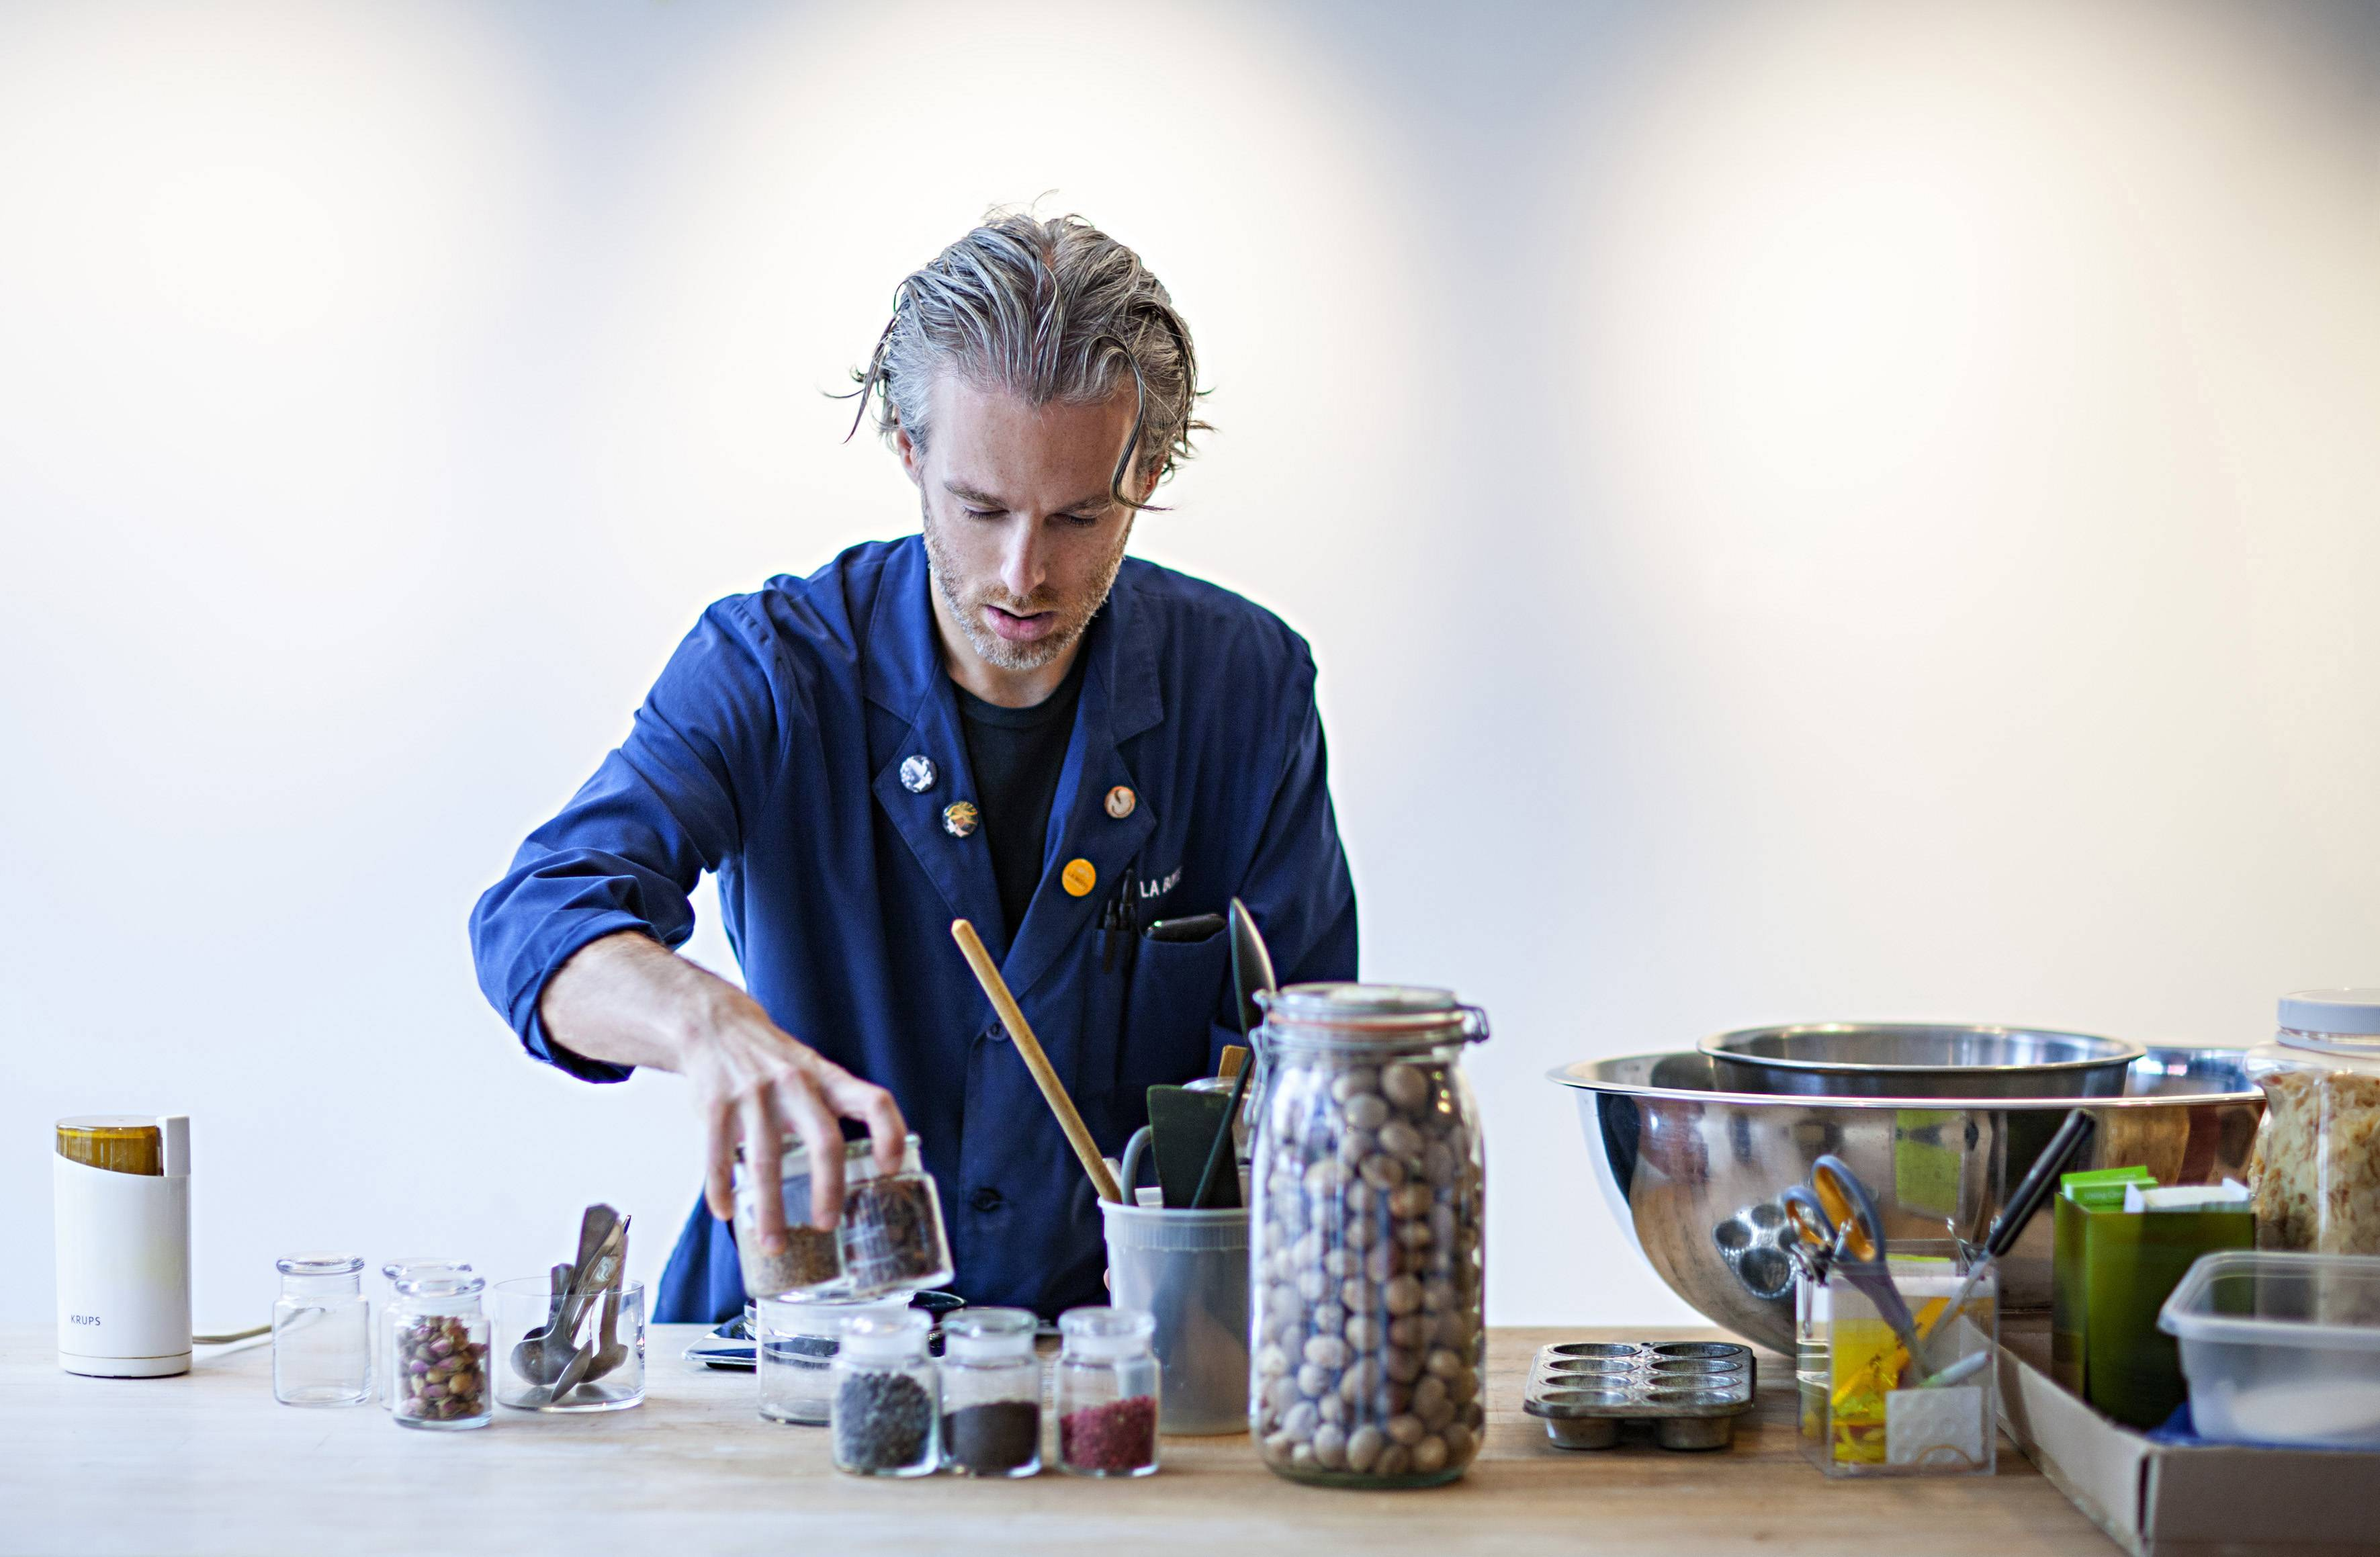 Chef Lior Lev Sercarz blending spices at La Boîte, the spice shop he founded in 2009 in New York.